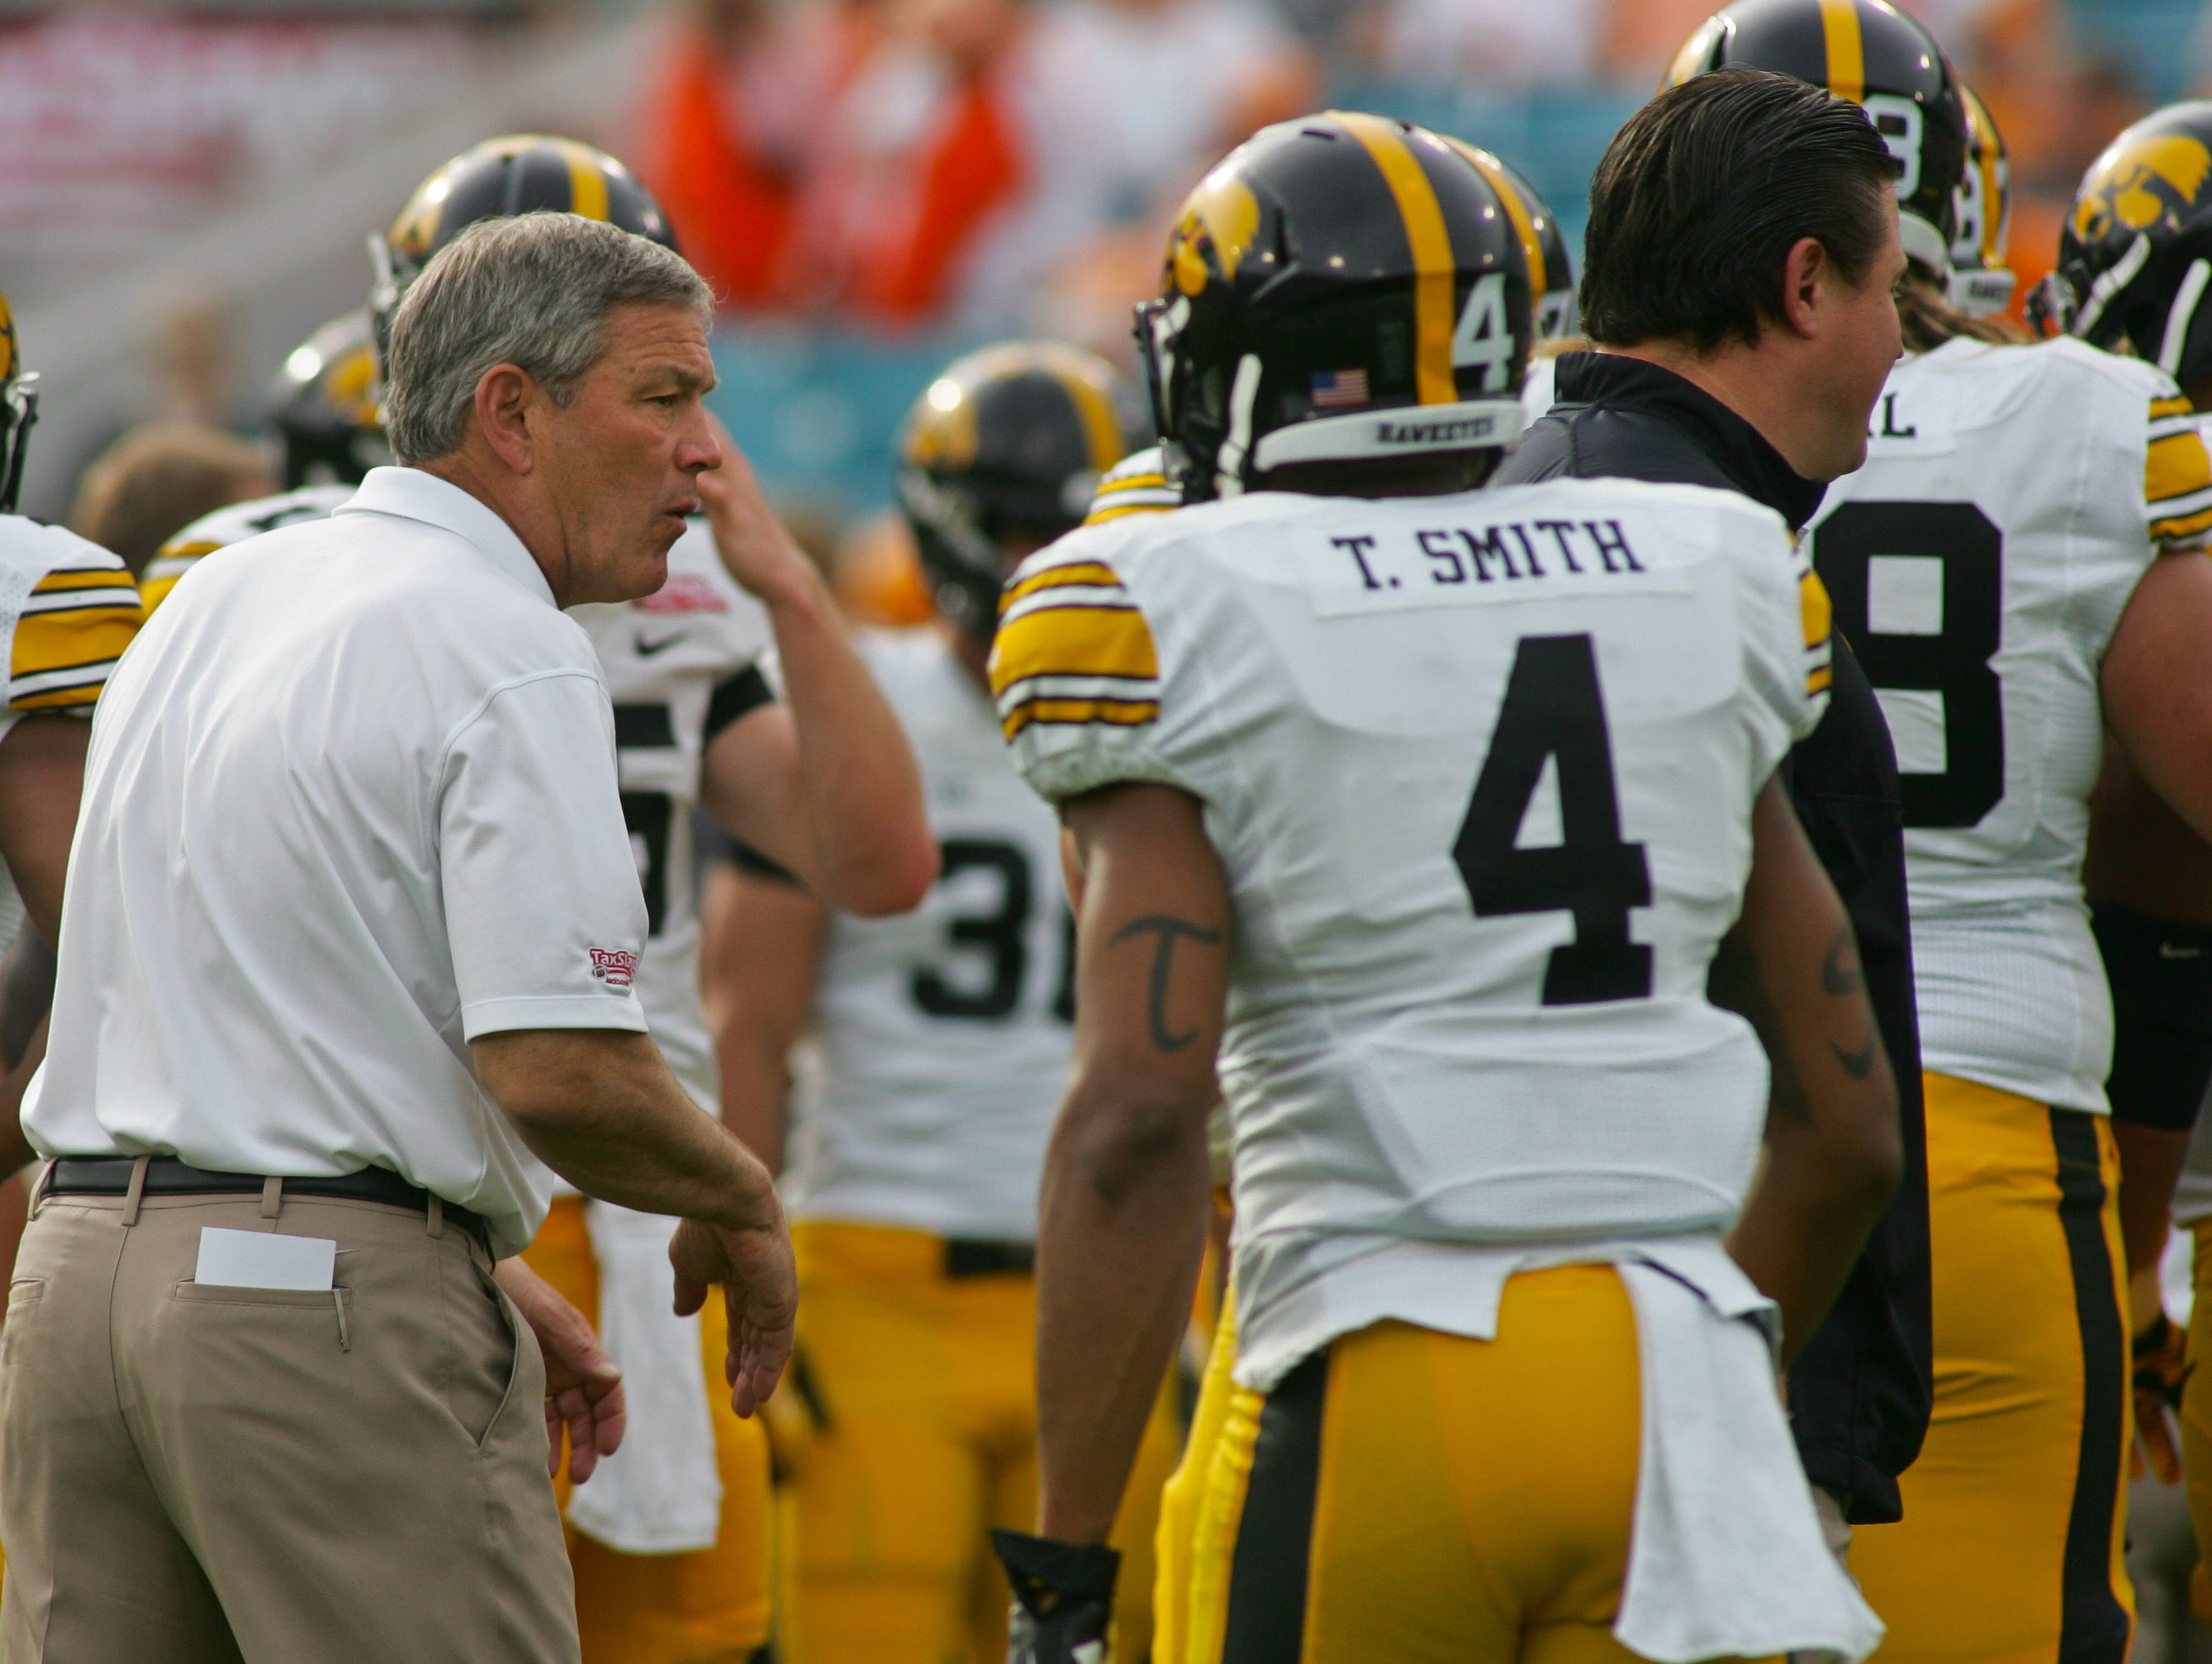 Jan 2, 2015; Jacksonville, FL, USA; Iowa Hawkeyes head coach Kirk Ferentz, left, talks to his team before the start of the 2015 TaxSlayer Bowl against the Tennessee Volunteers at EverBank Field. The Tennessee Volunteers beat the Iowa Hawkeyes 45-28. Mandatory Credit: Phil Sears-USA TODAY Sports